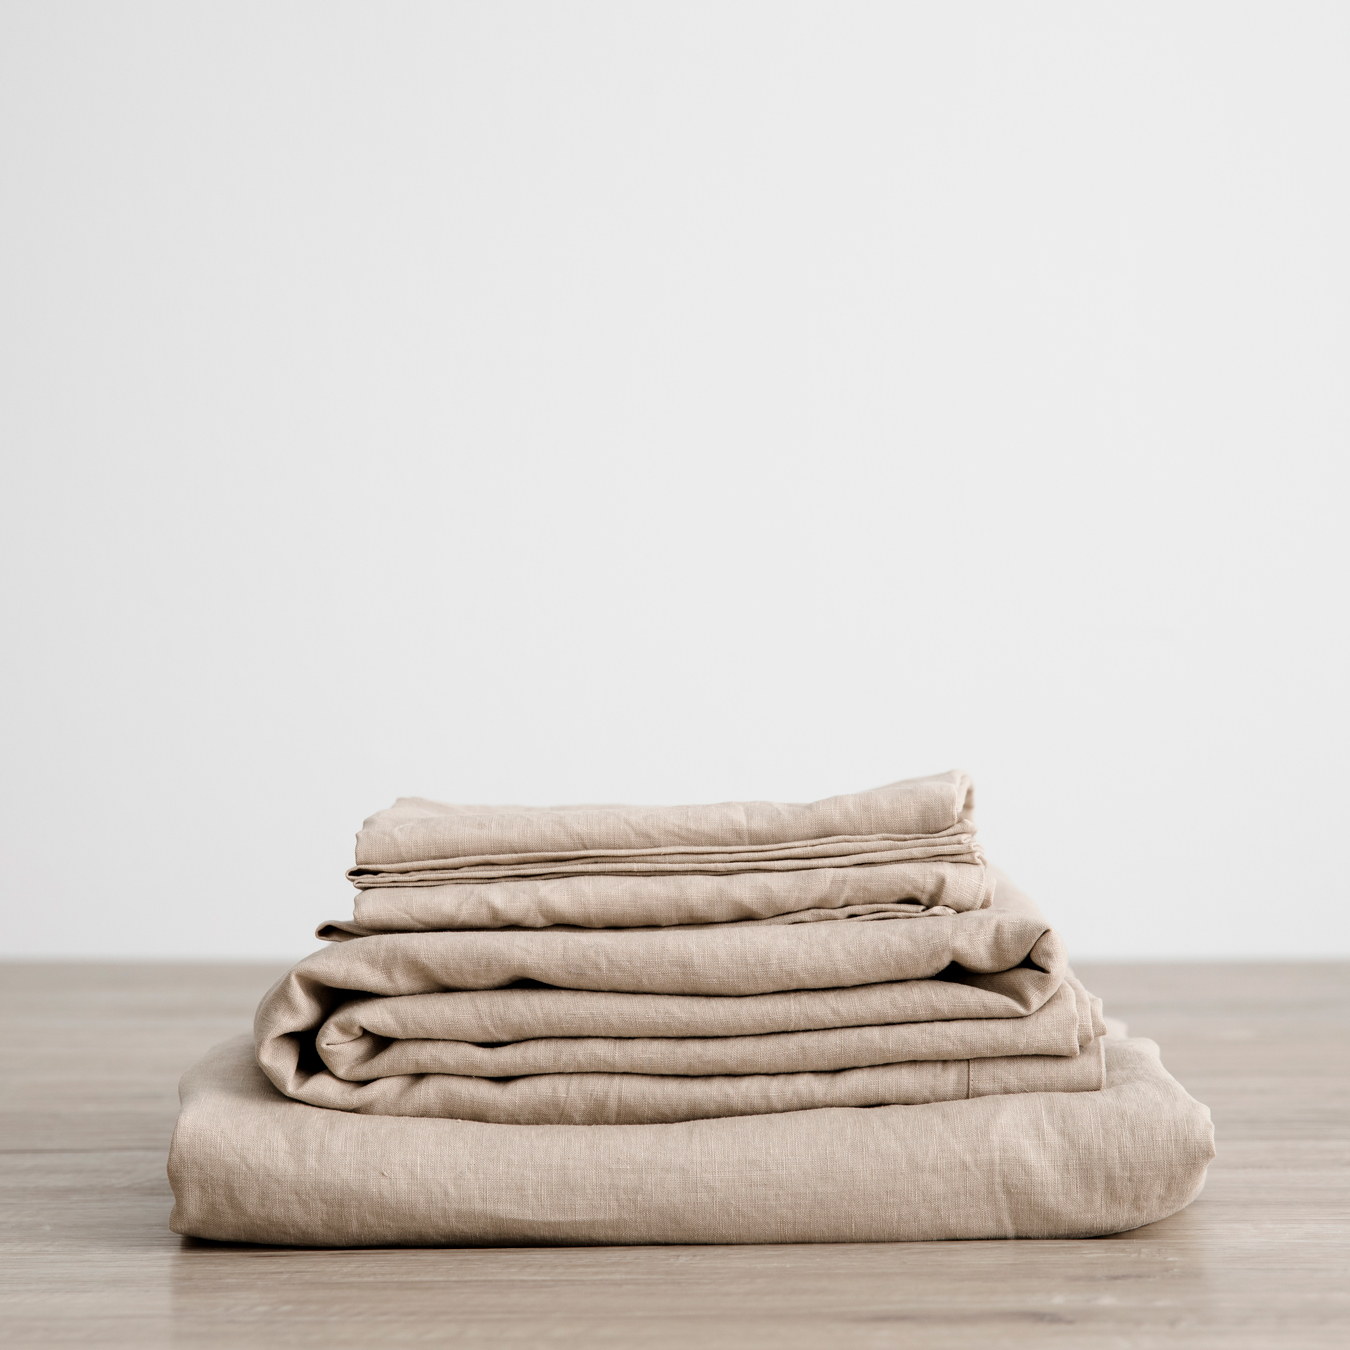 King Linen Sheet Set with Pillowcases Nude